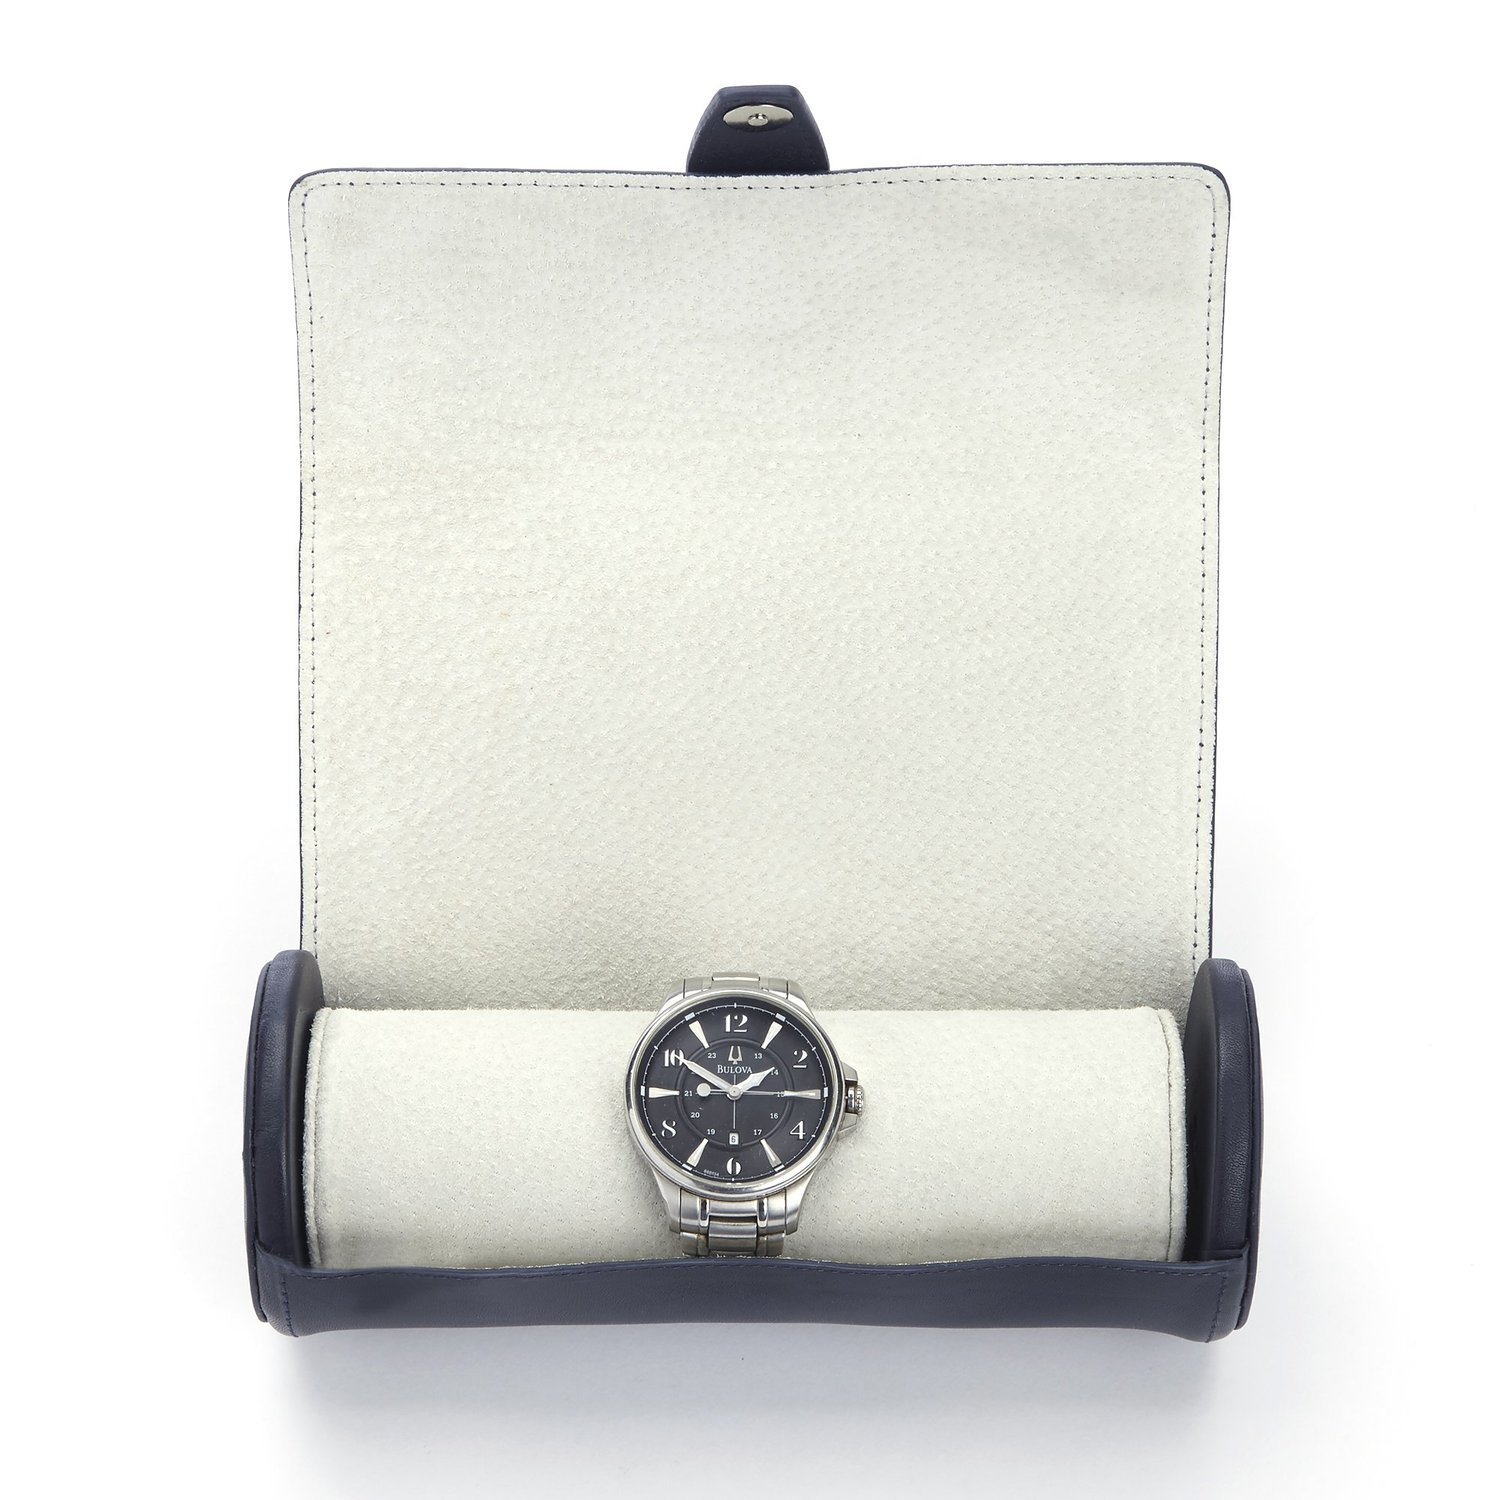 Royce Leather Executive Travel Watch Carrying Case in Genuine Leather with Su...